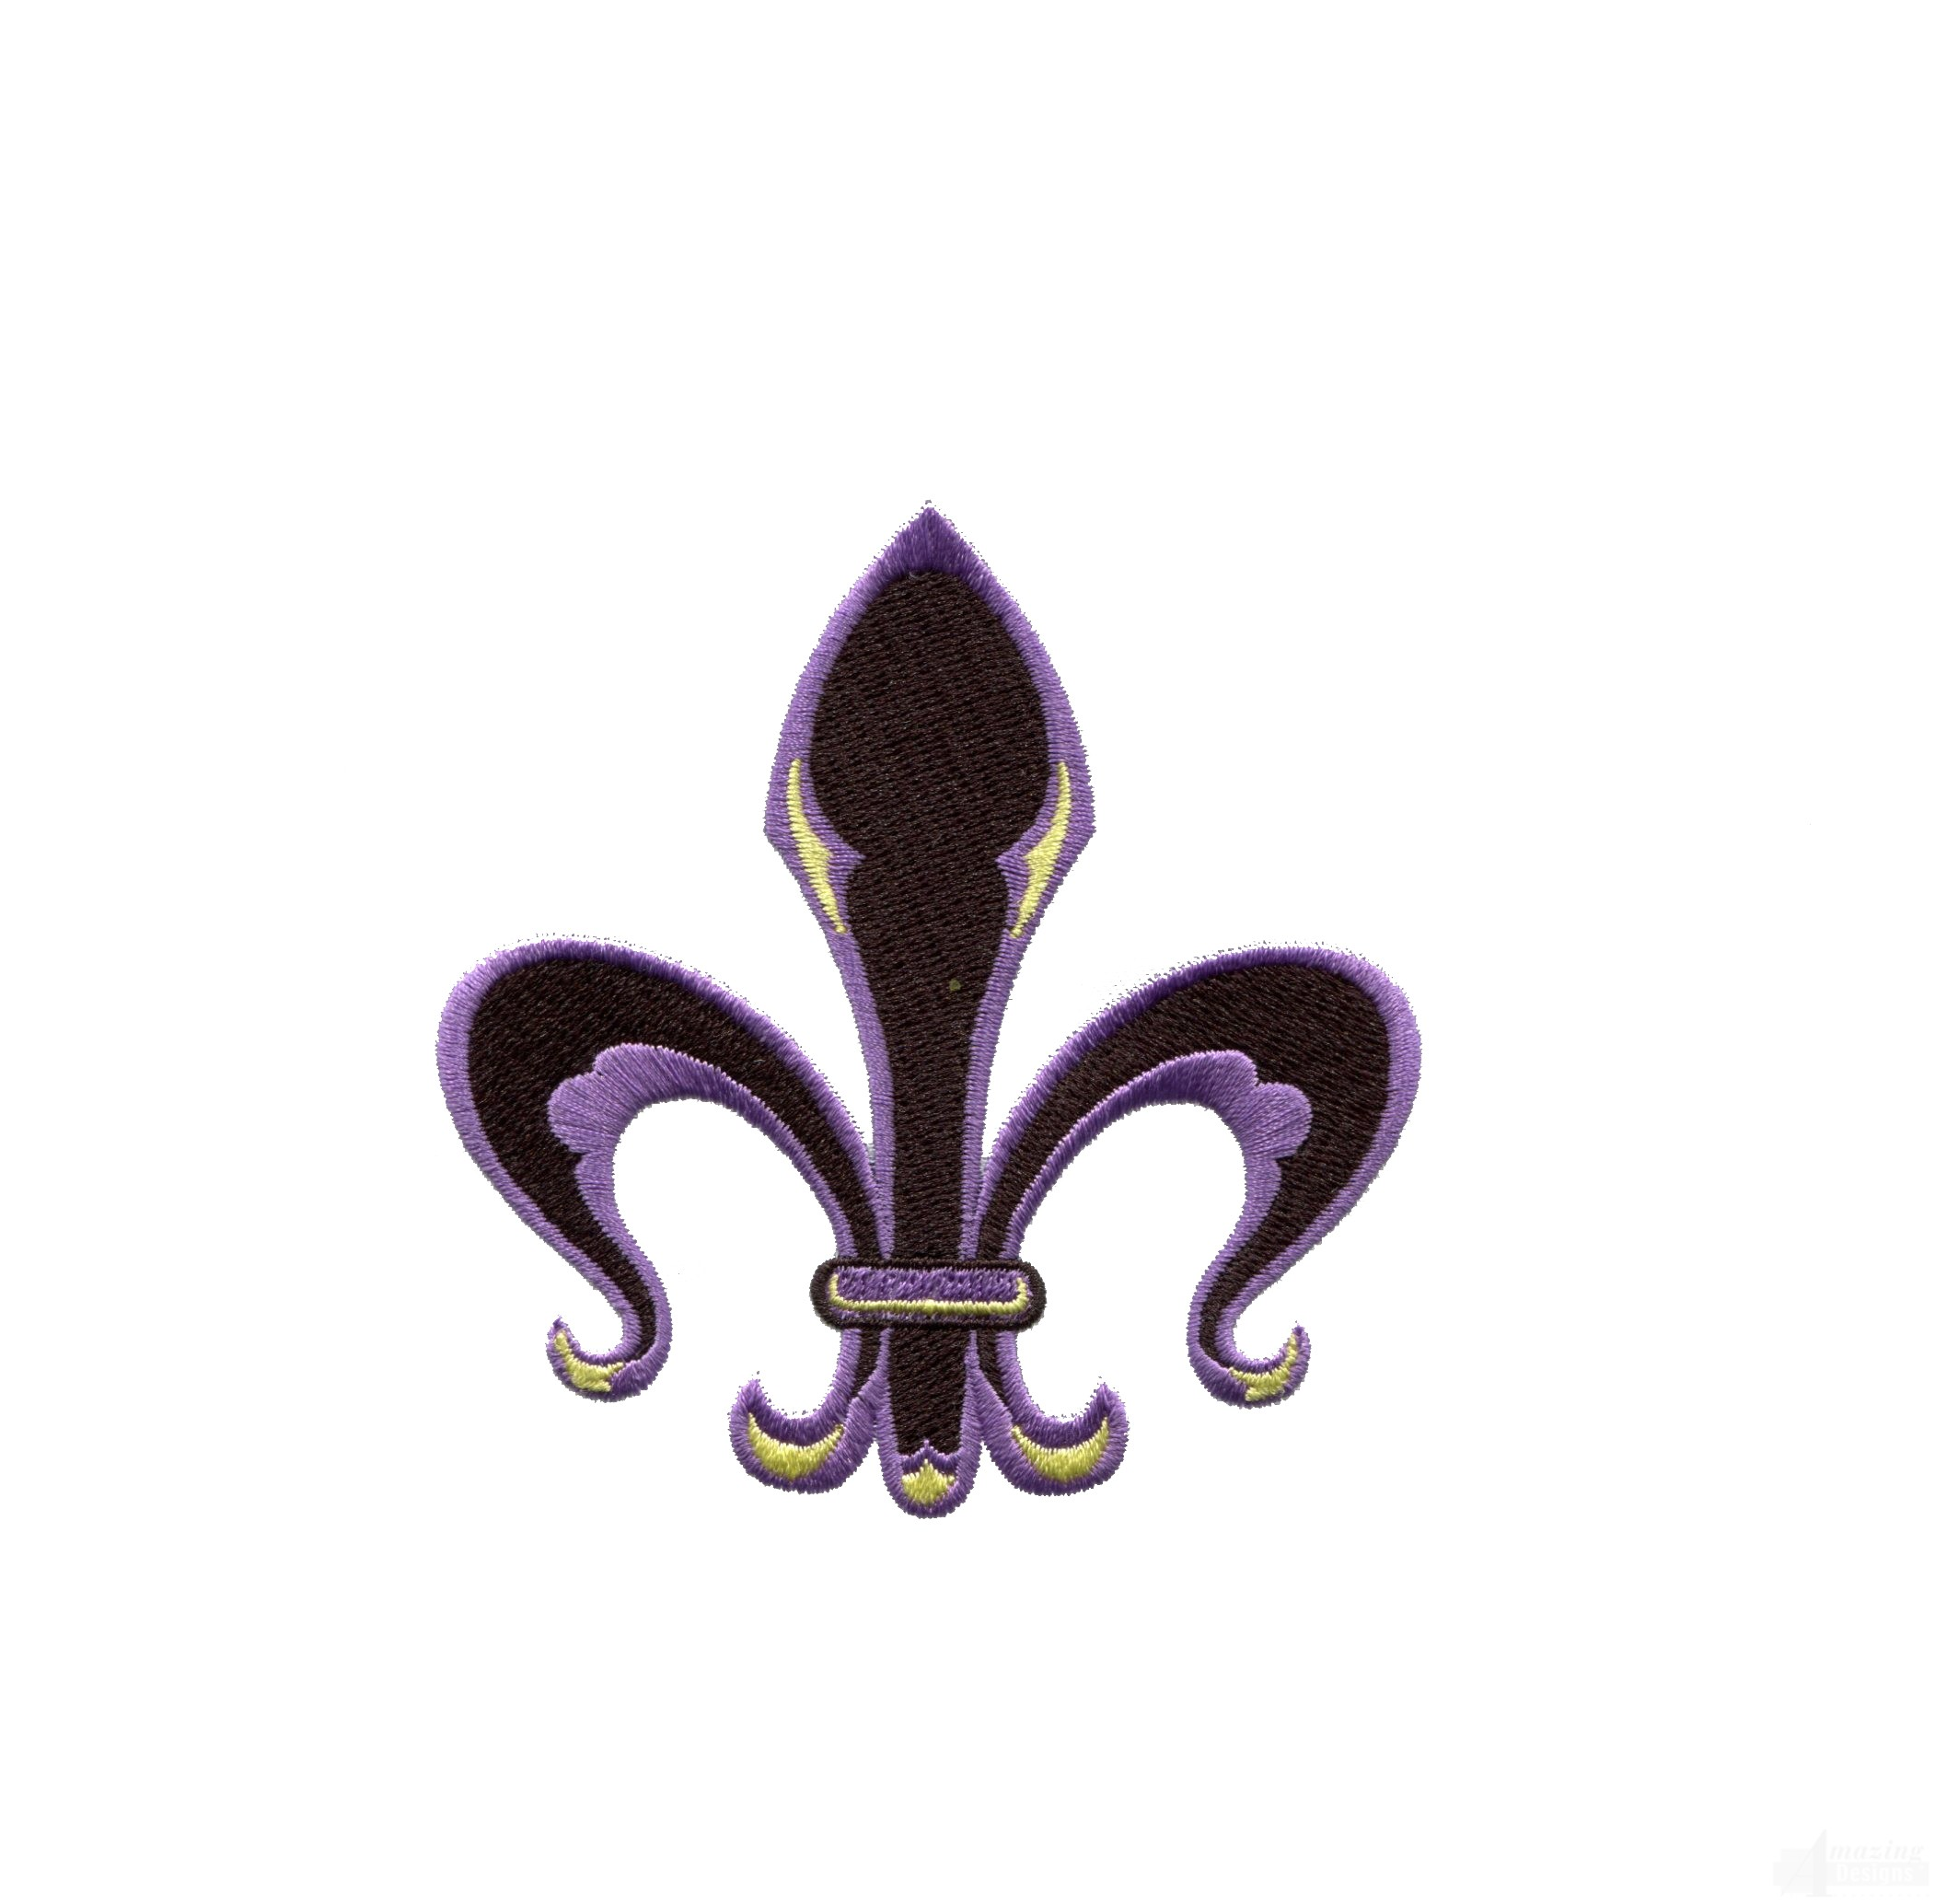 Free Fleur D Lis Embroidery Designs Download 2017 2018